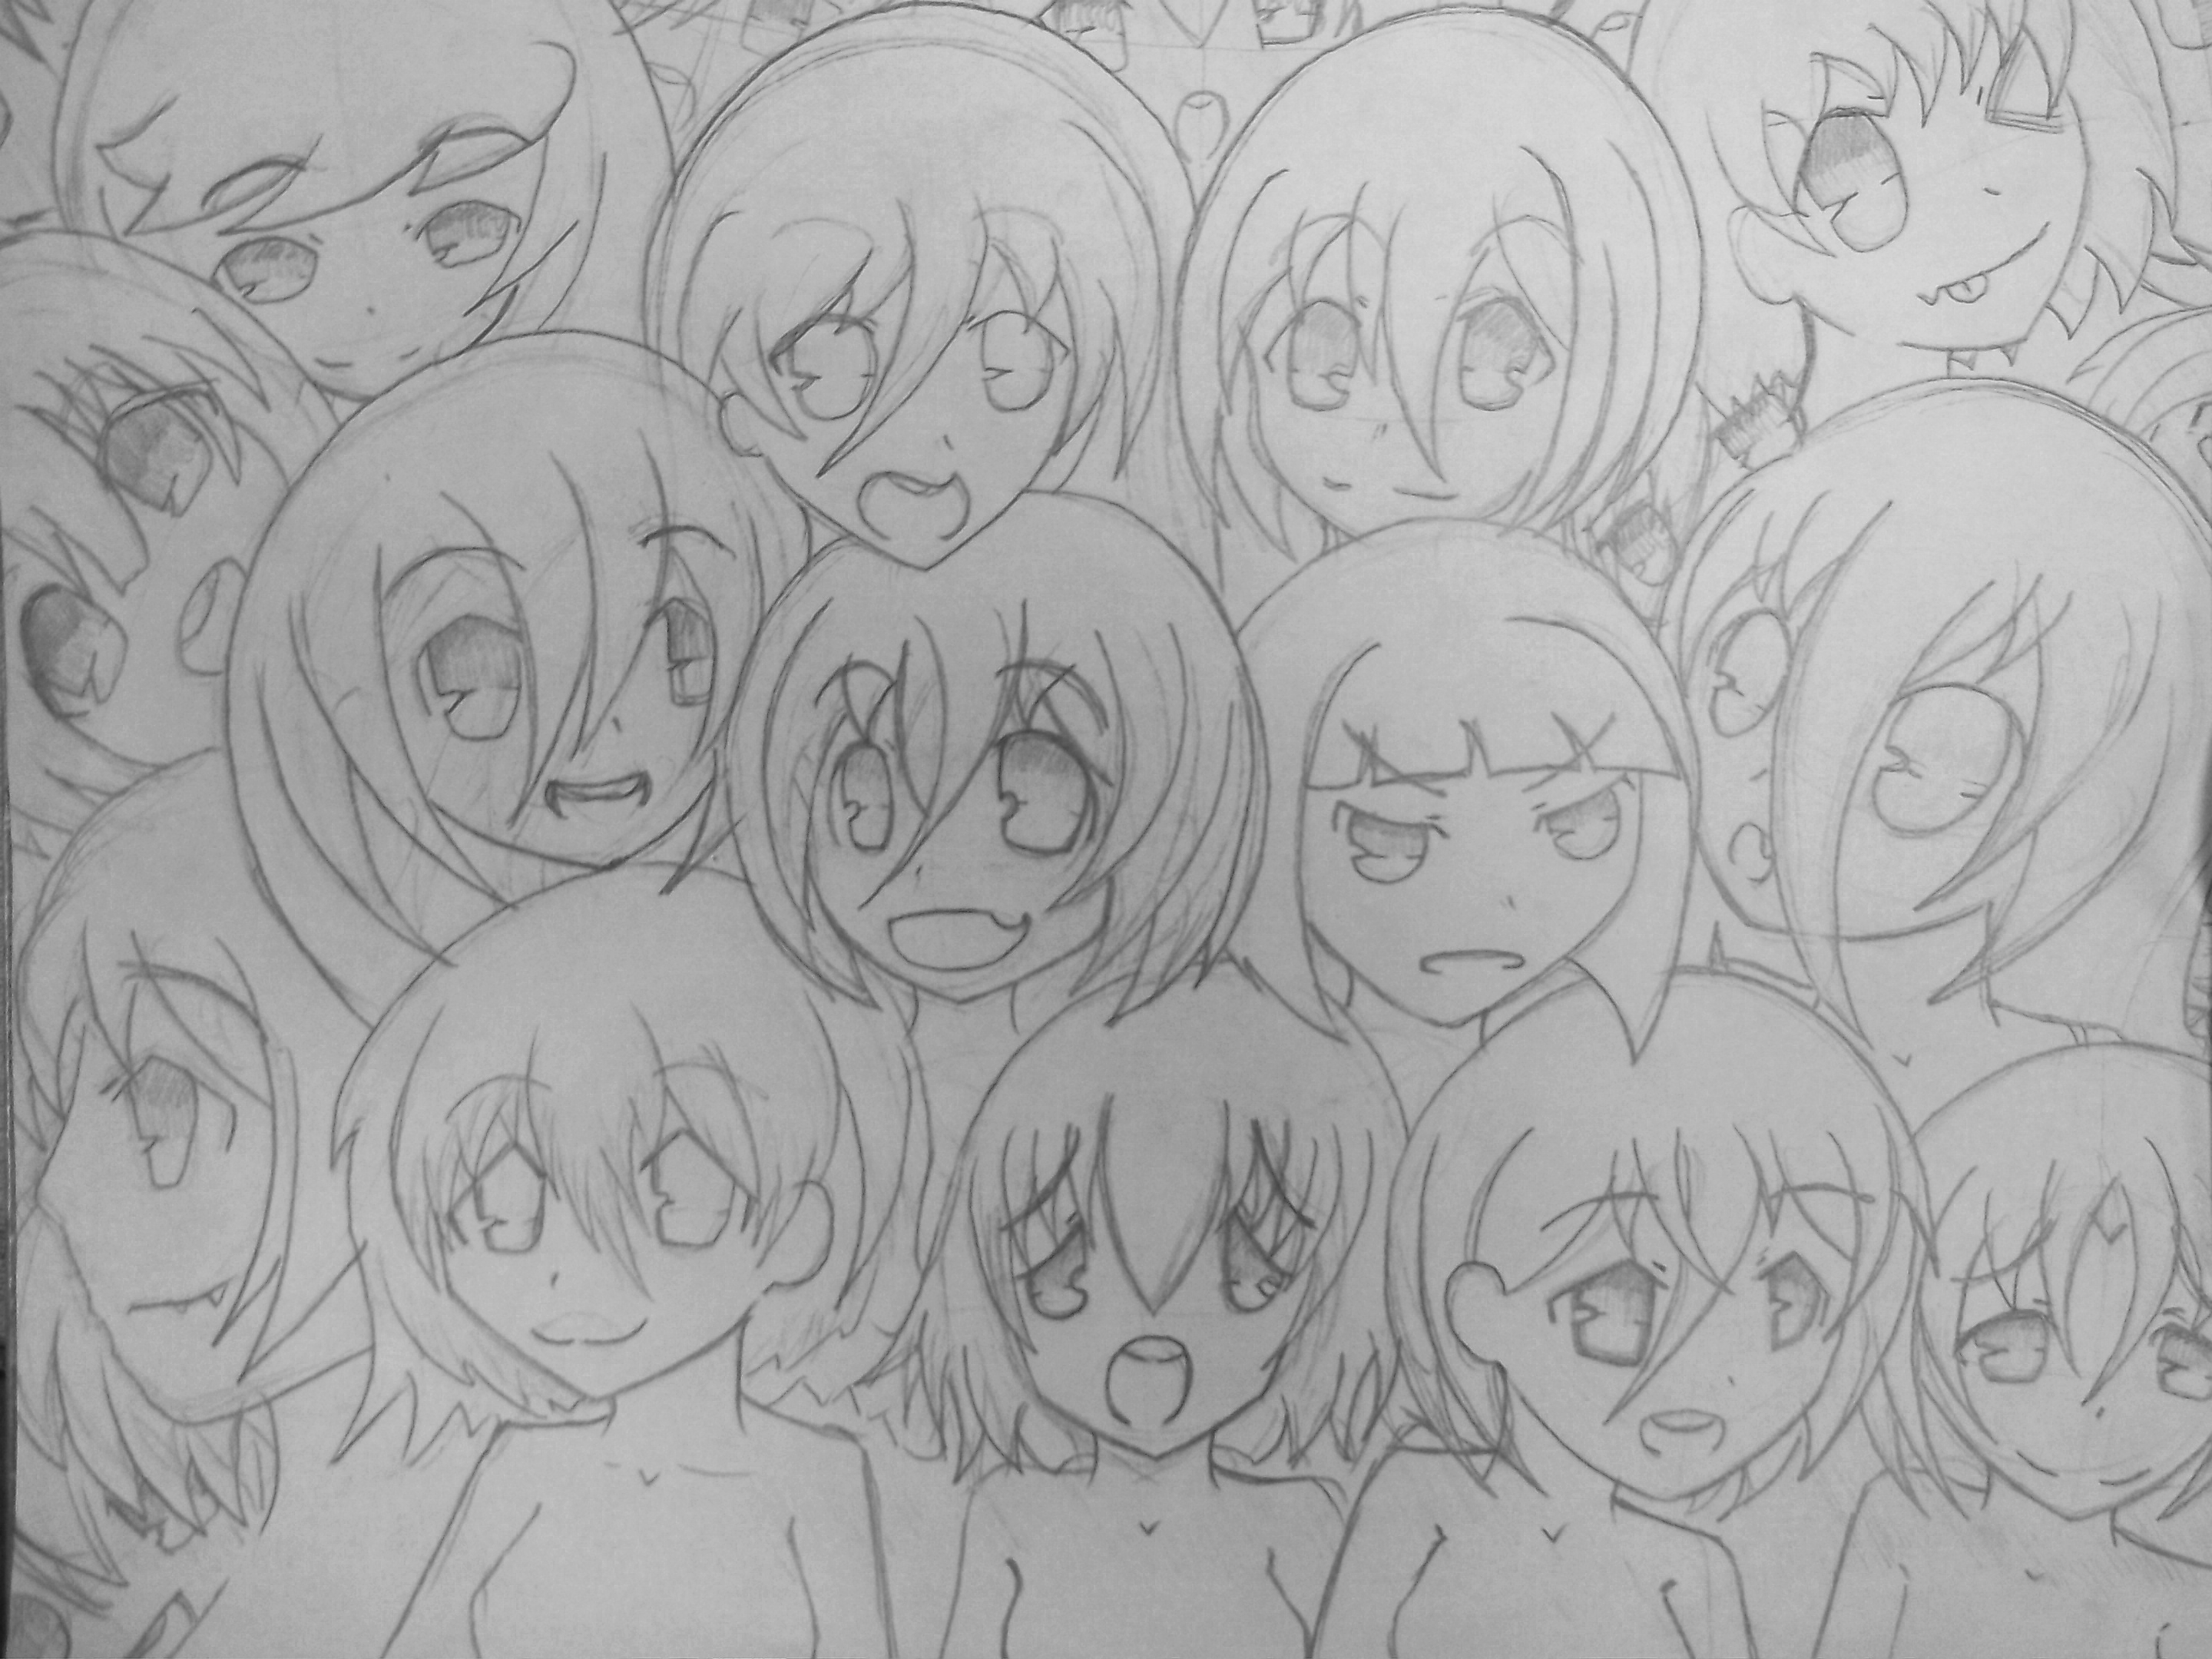 Face Overload 01